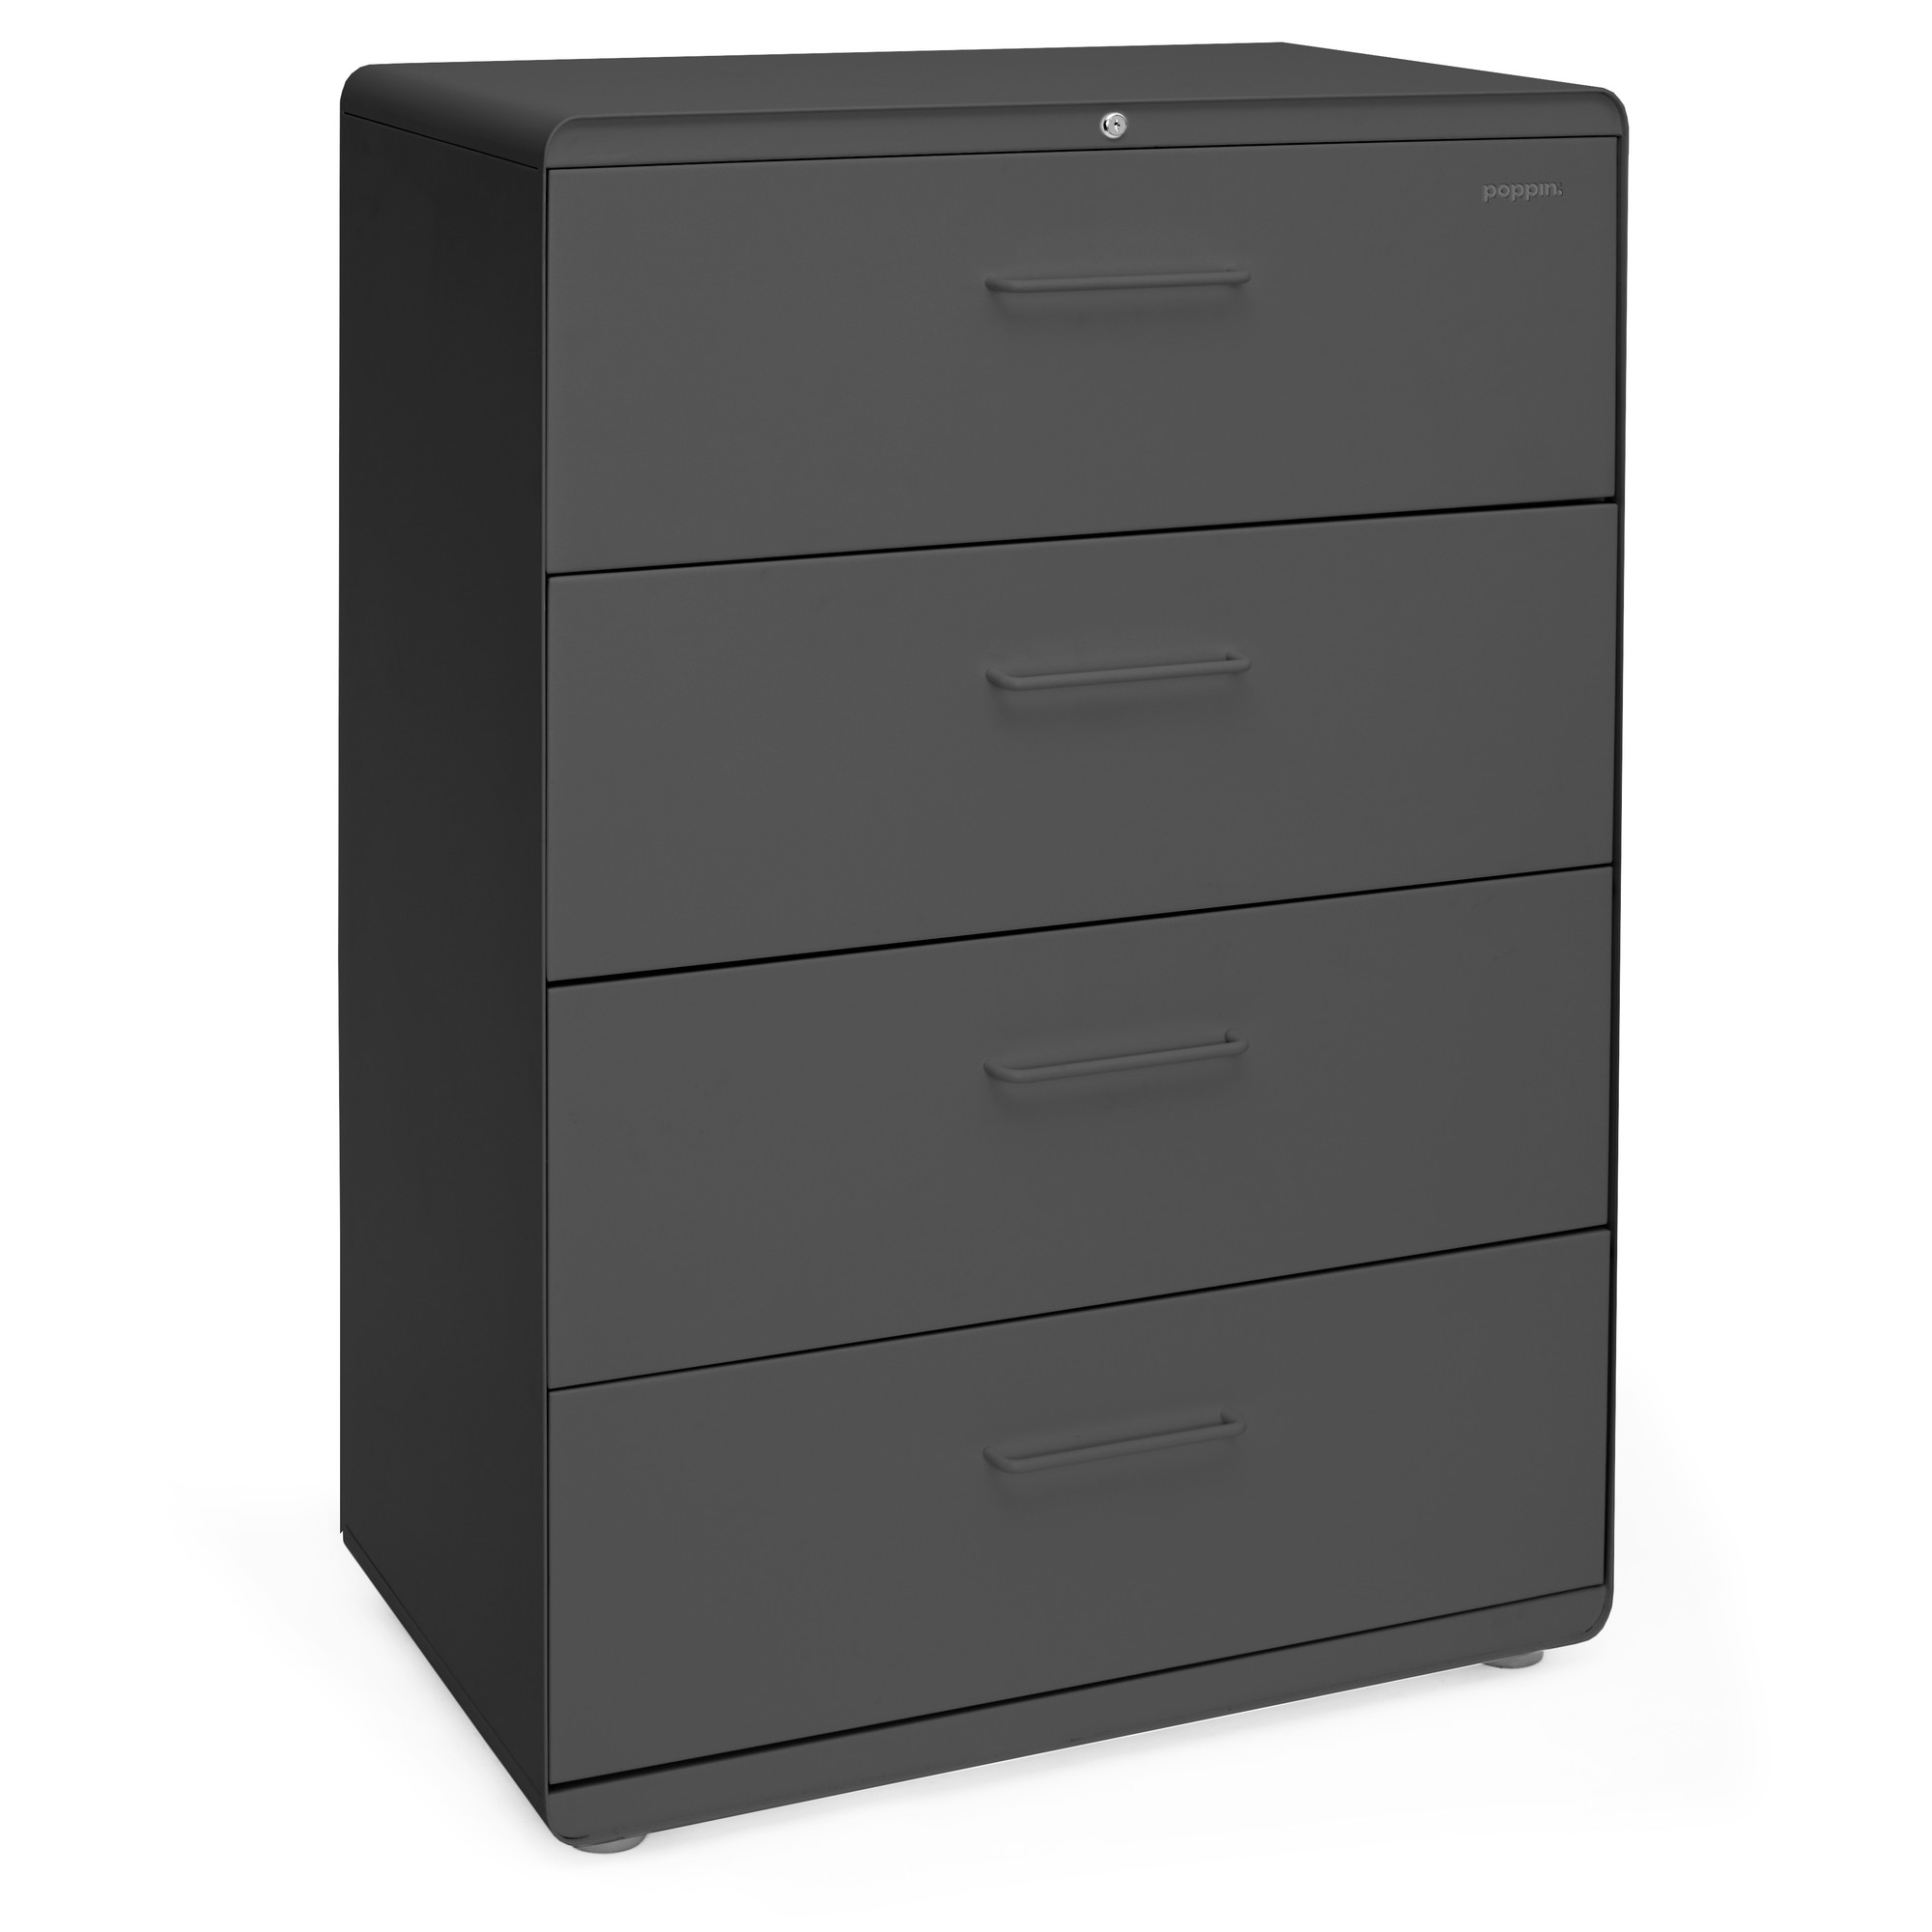 Attractive Charcoal Stow 4 Drawer Lateral File Cabinet,Charcoal,hi Res. Loading Zoom